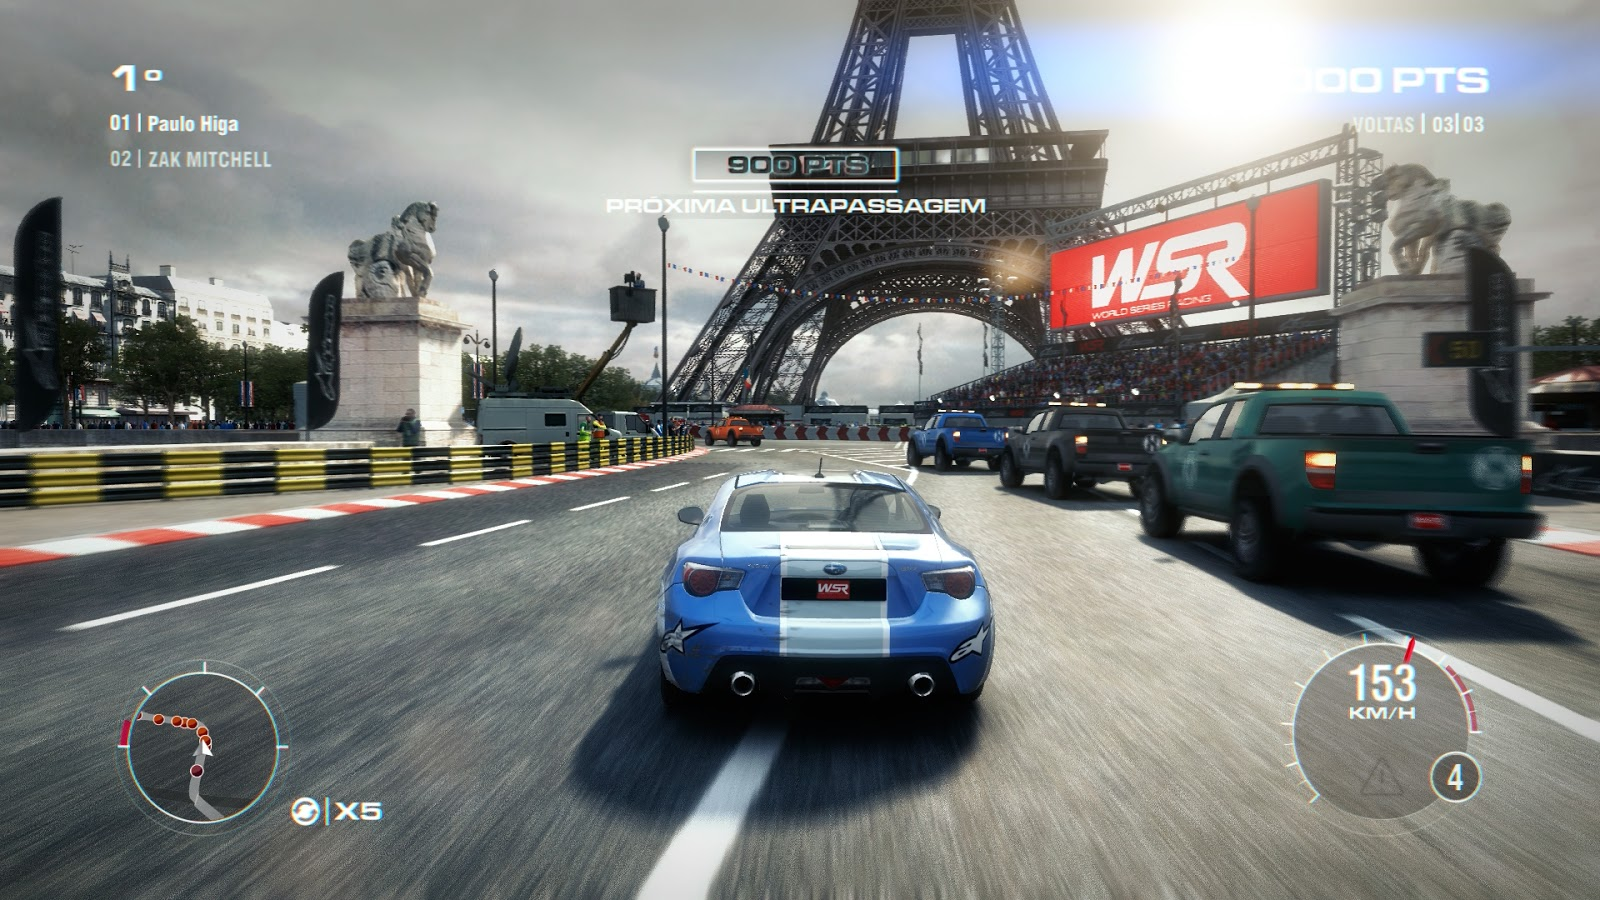 Enjoy playing the Grid 2